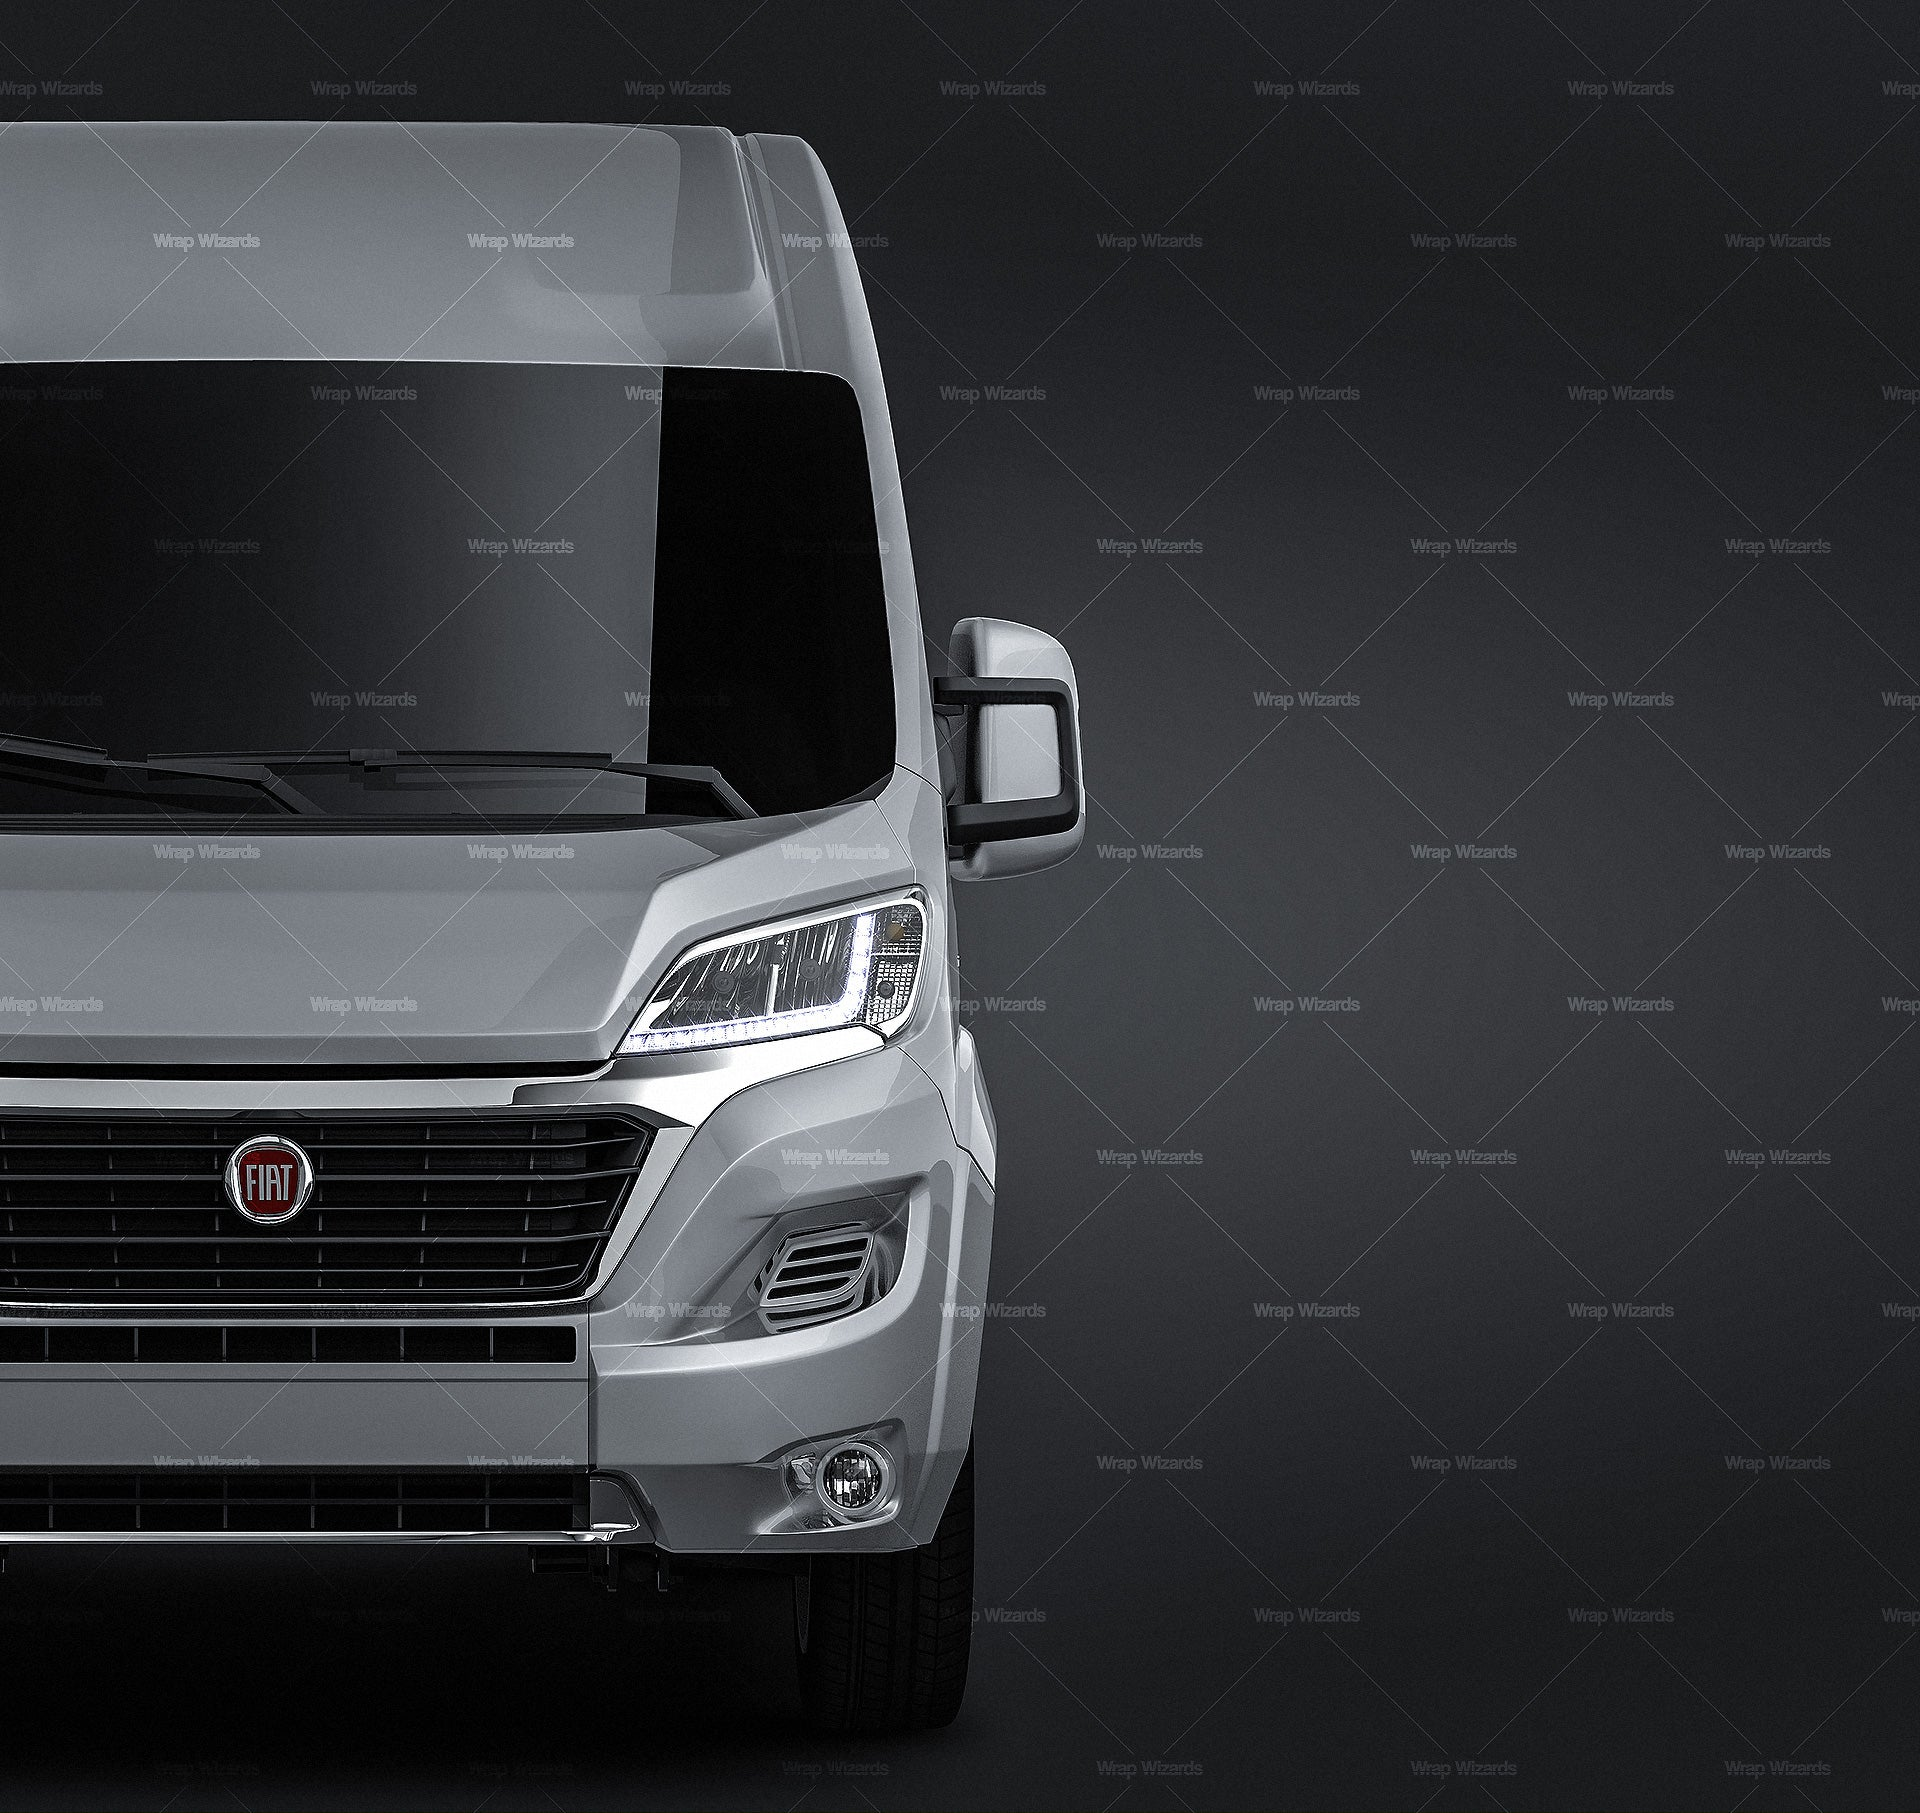 Fiat Ducato 2020 all sides Car Mockup Template.psd